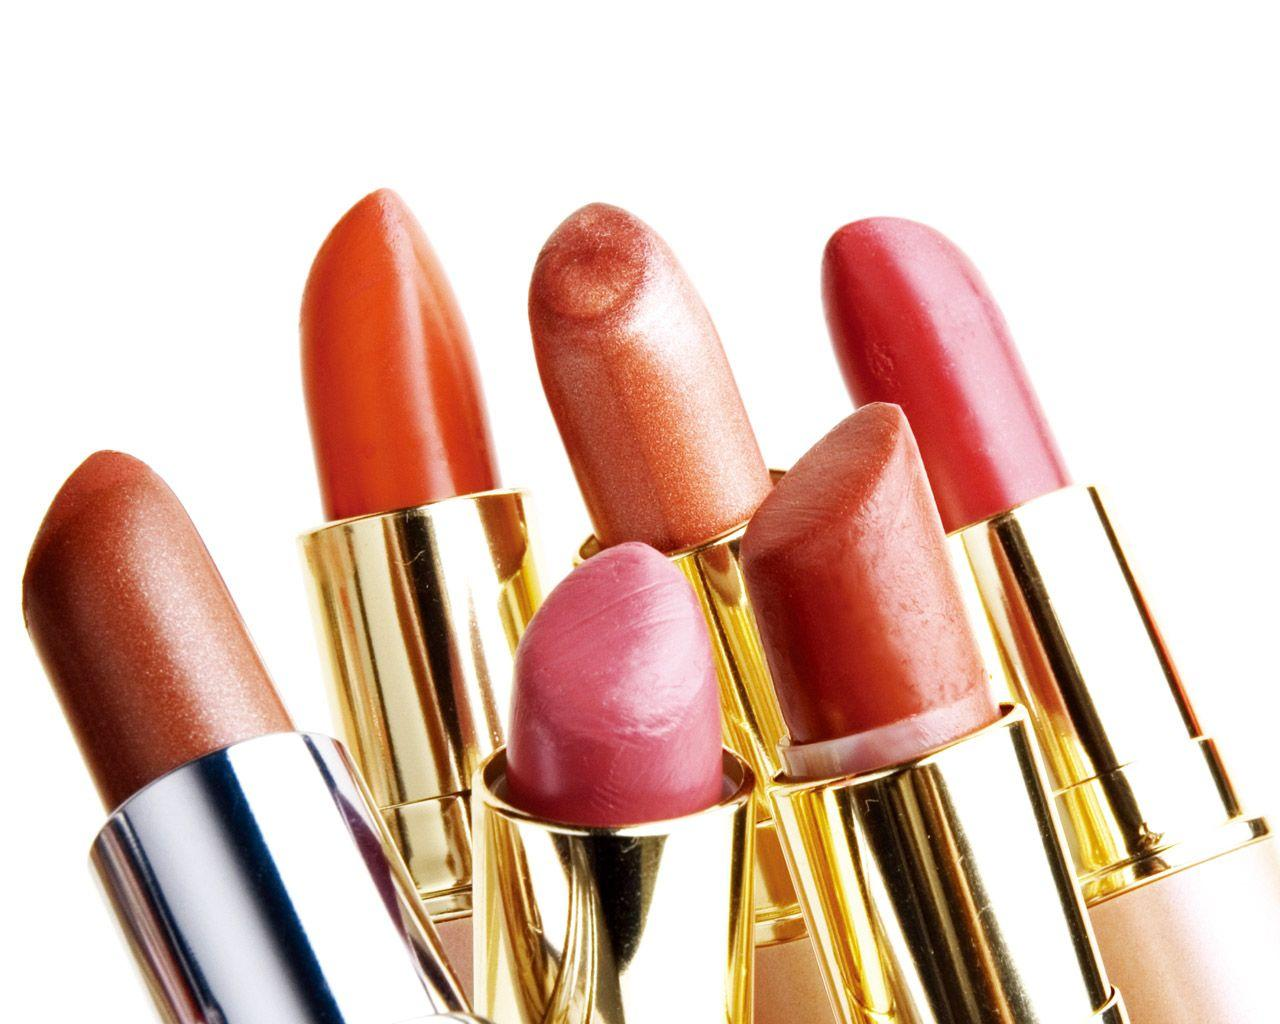 Cosmetics Live Images HD Wallpapers